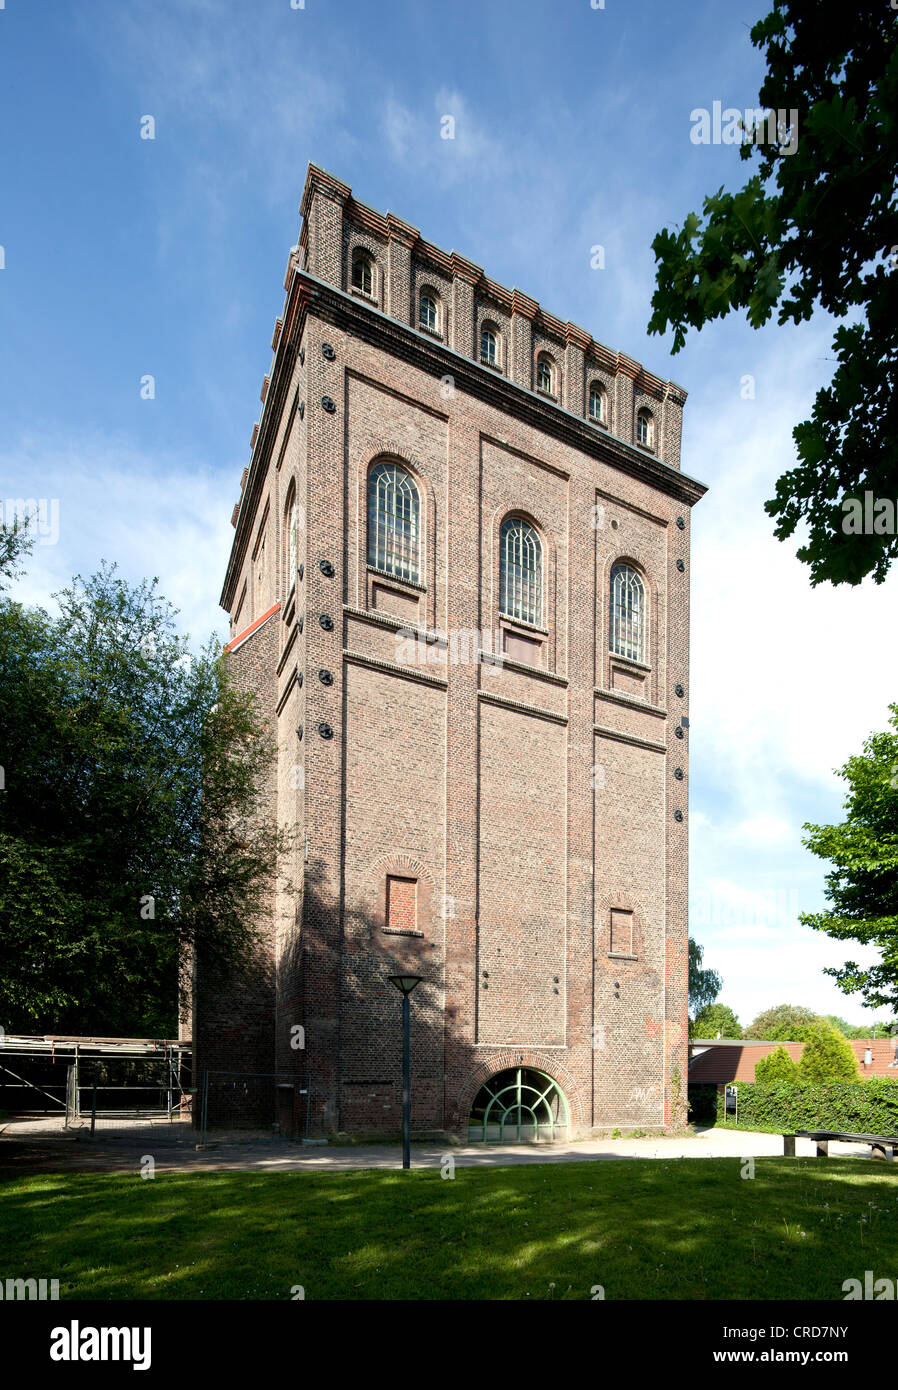 Malakow Tower of the former Julius Philipp Mine, Medicine Historical Collection of the Ruhr-University Bochum, Bochum, - Stock Image